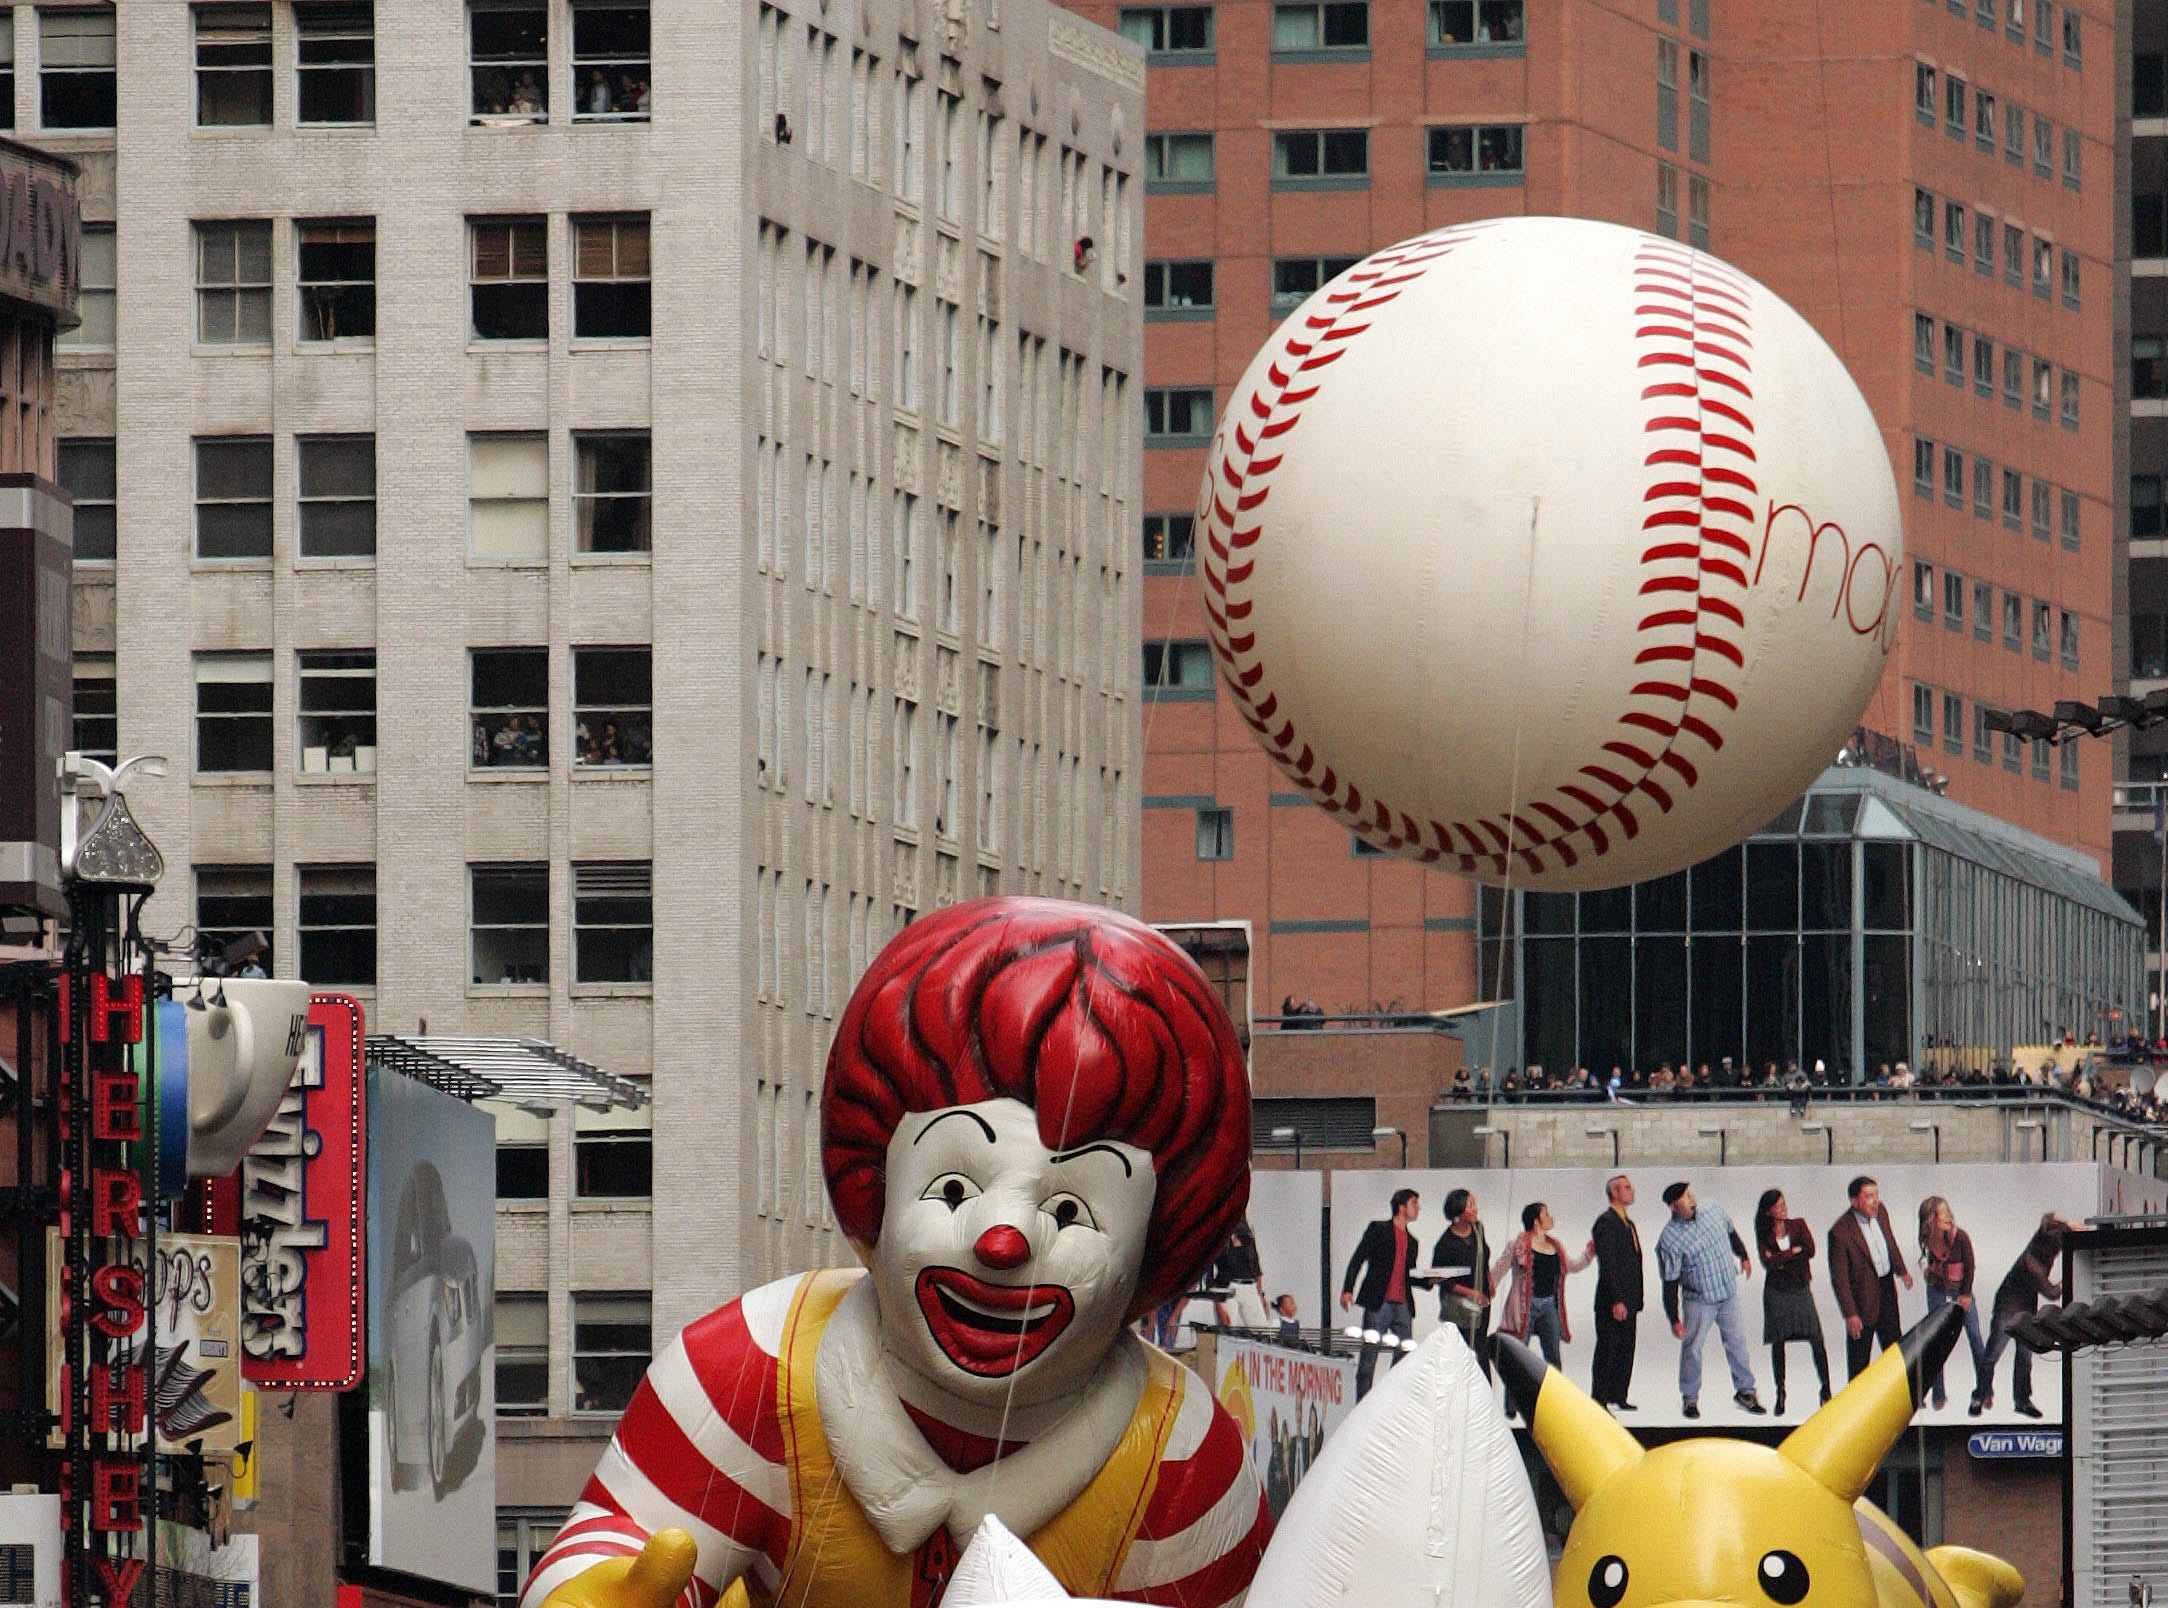 The Ronald McDonald balloon makes its way down Broadway towards Times Square during the Macy's Thanksgiving Day Parade Thursday, Nov. 24, 2005 in New York. (AP Photo/Julie Jacobson)